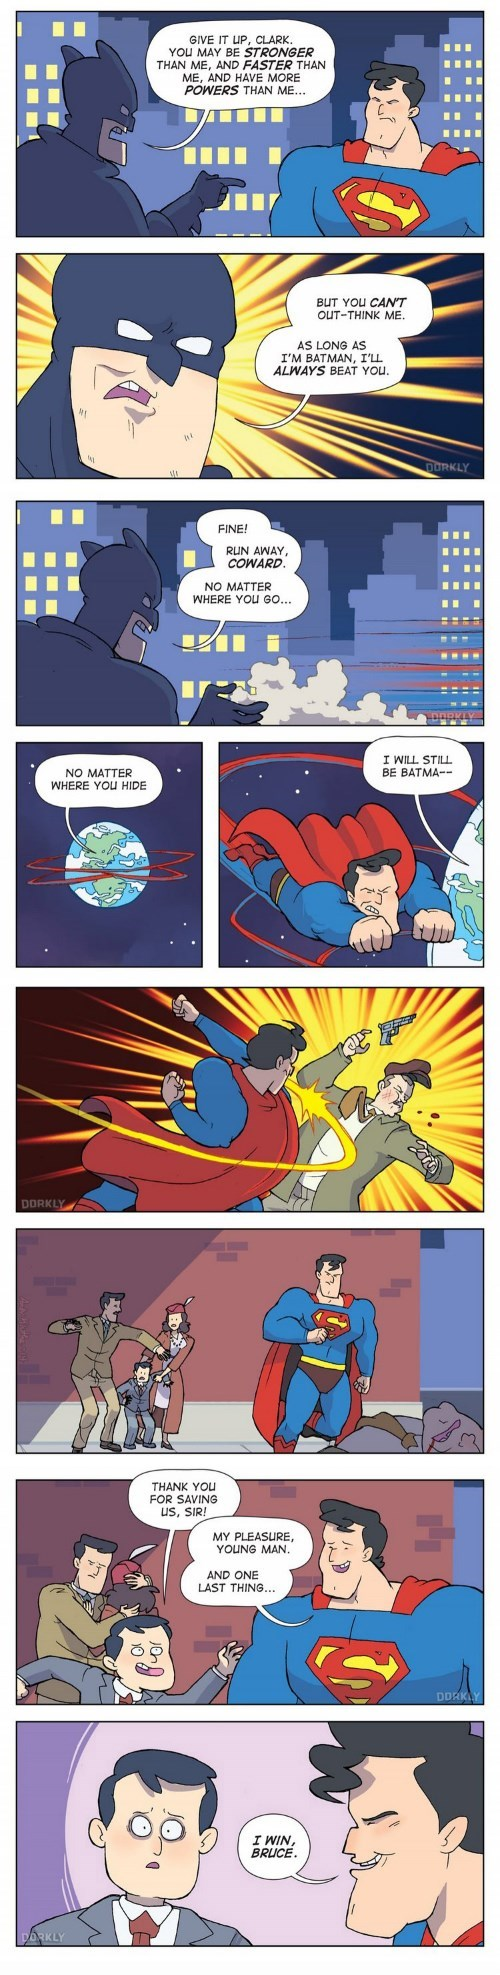 Batman v Superman,time travel,web comics